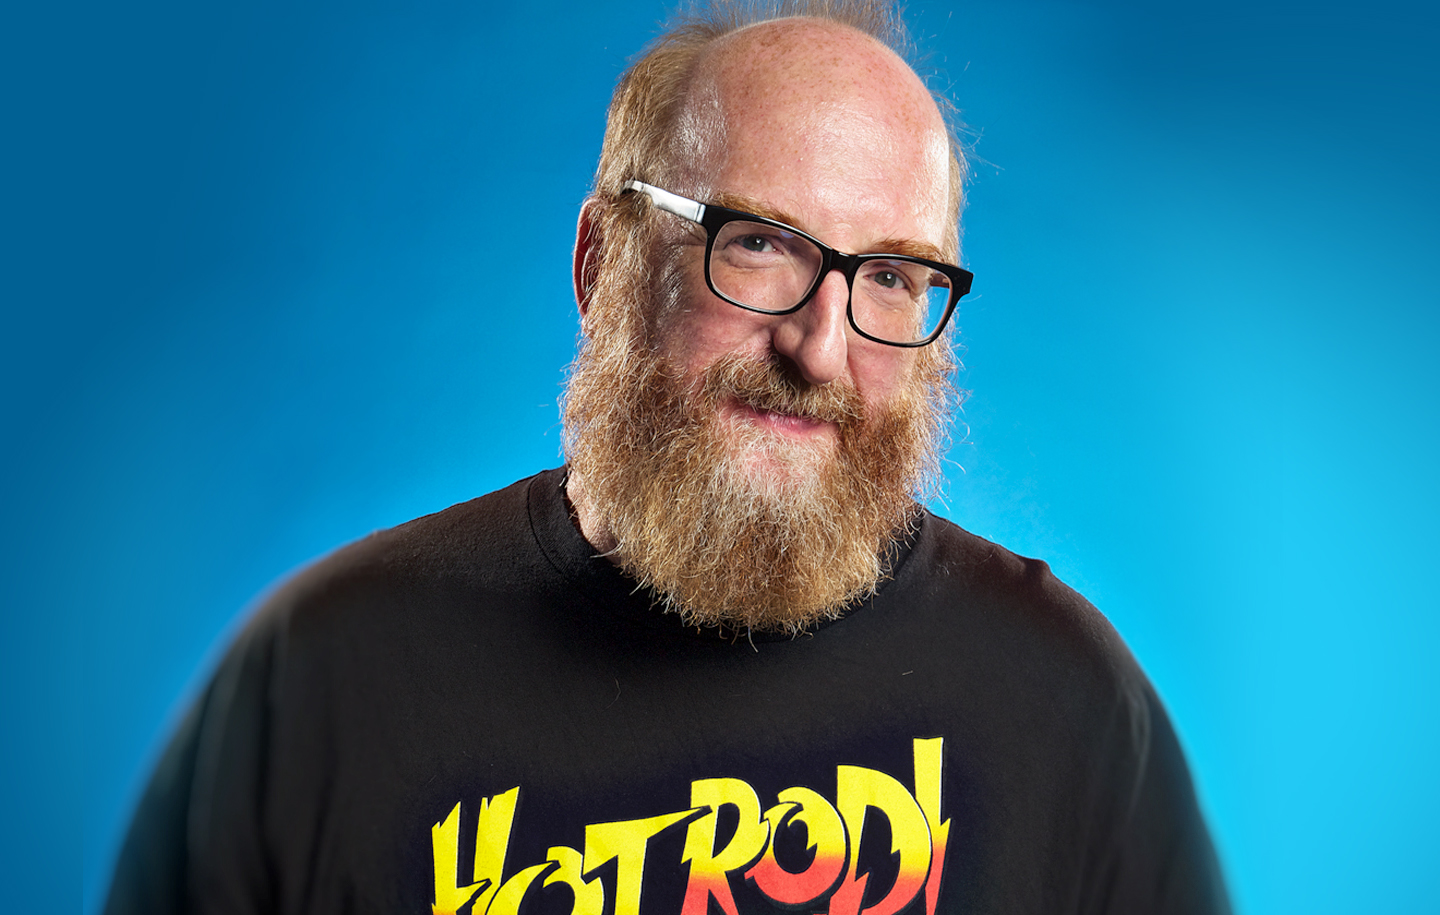 The Circle Of Laughs Comedian And Actor Brian Posehn